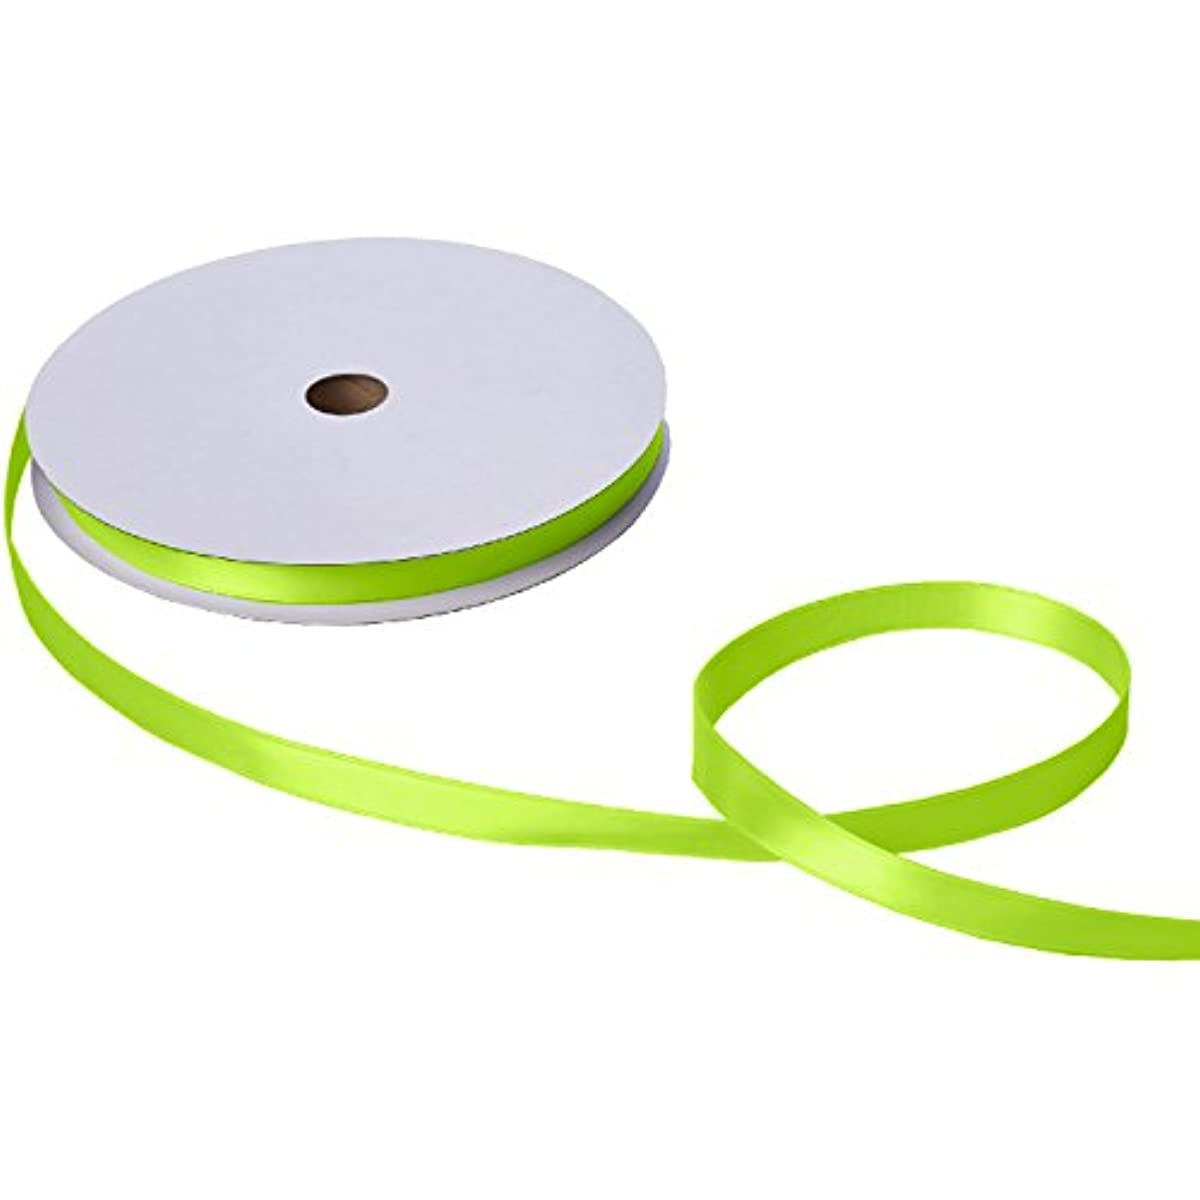 Jillson Roberts Bulk 5/8-Inch Double Faced Satin Ribbon Available in 21 Colors, Lime Green, 100 Yard Spool (BFR0941)